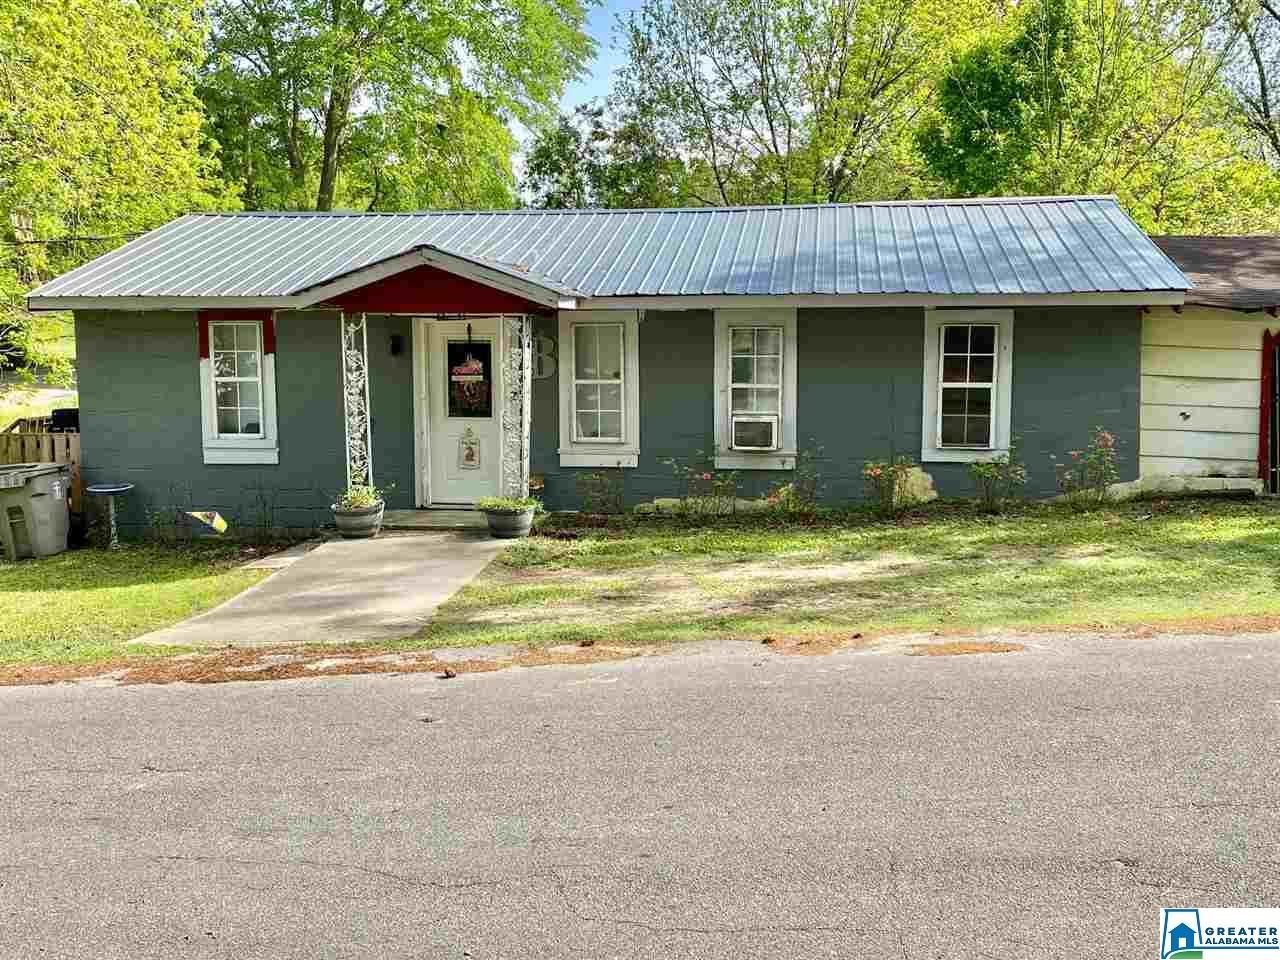 230 LINCOLN ST E, Thorsby, AL 35171 - MLS#: 880156